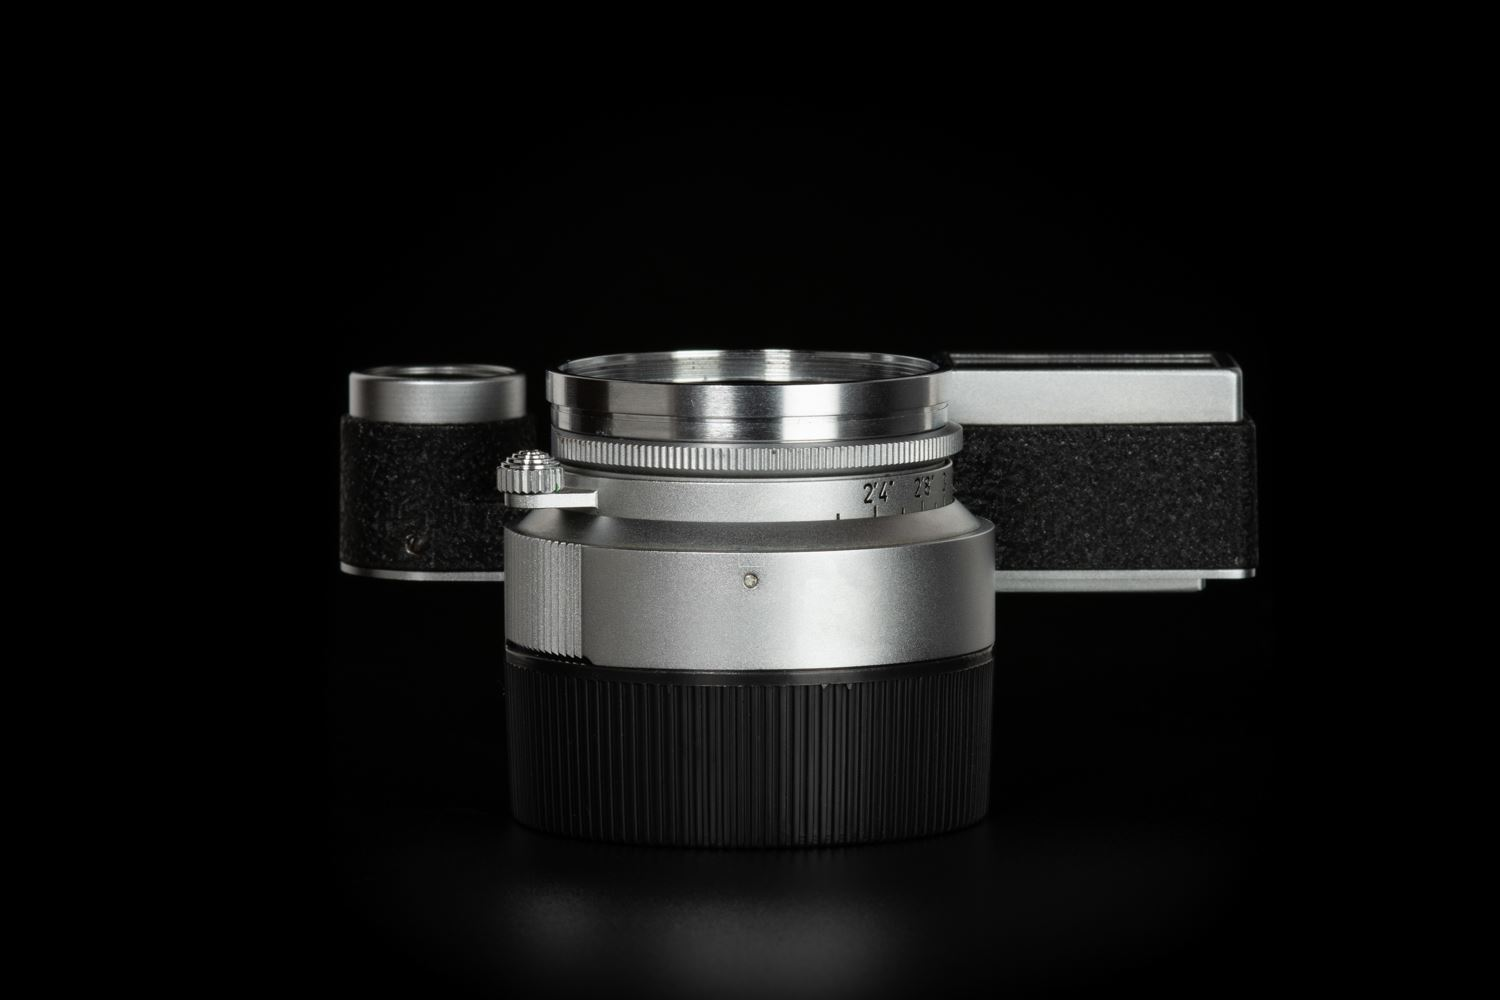 Picture of Leica Summaron 35mm f/3.5 With M3 goggle attachment